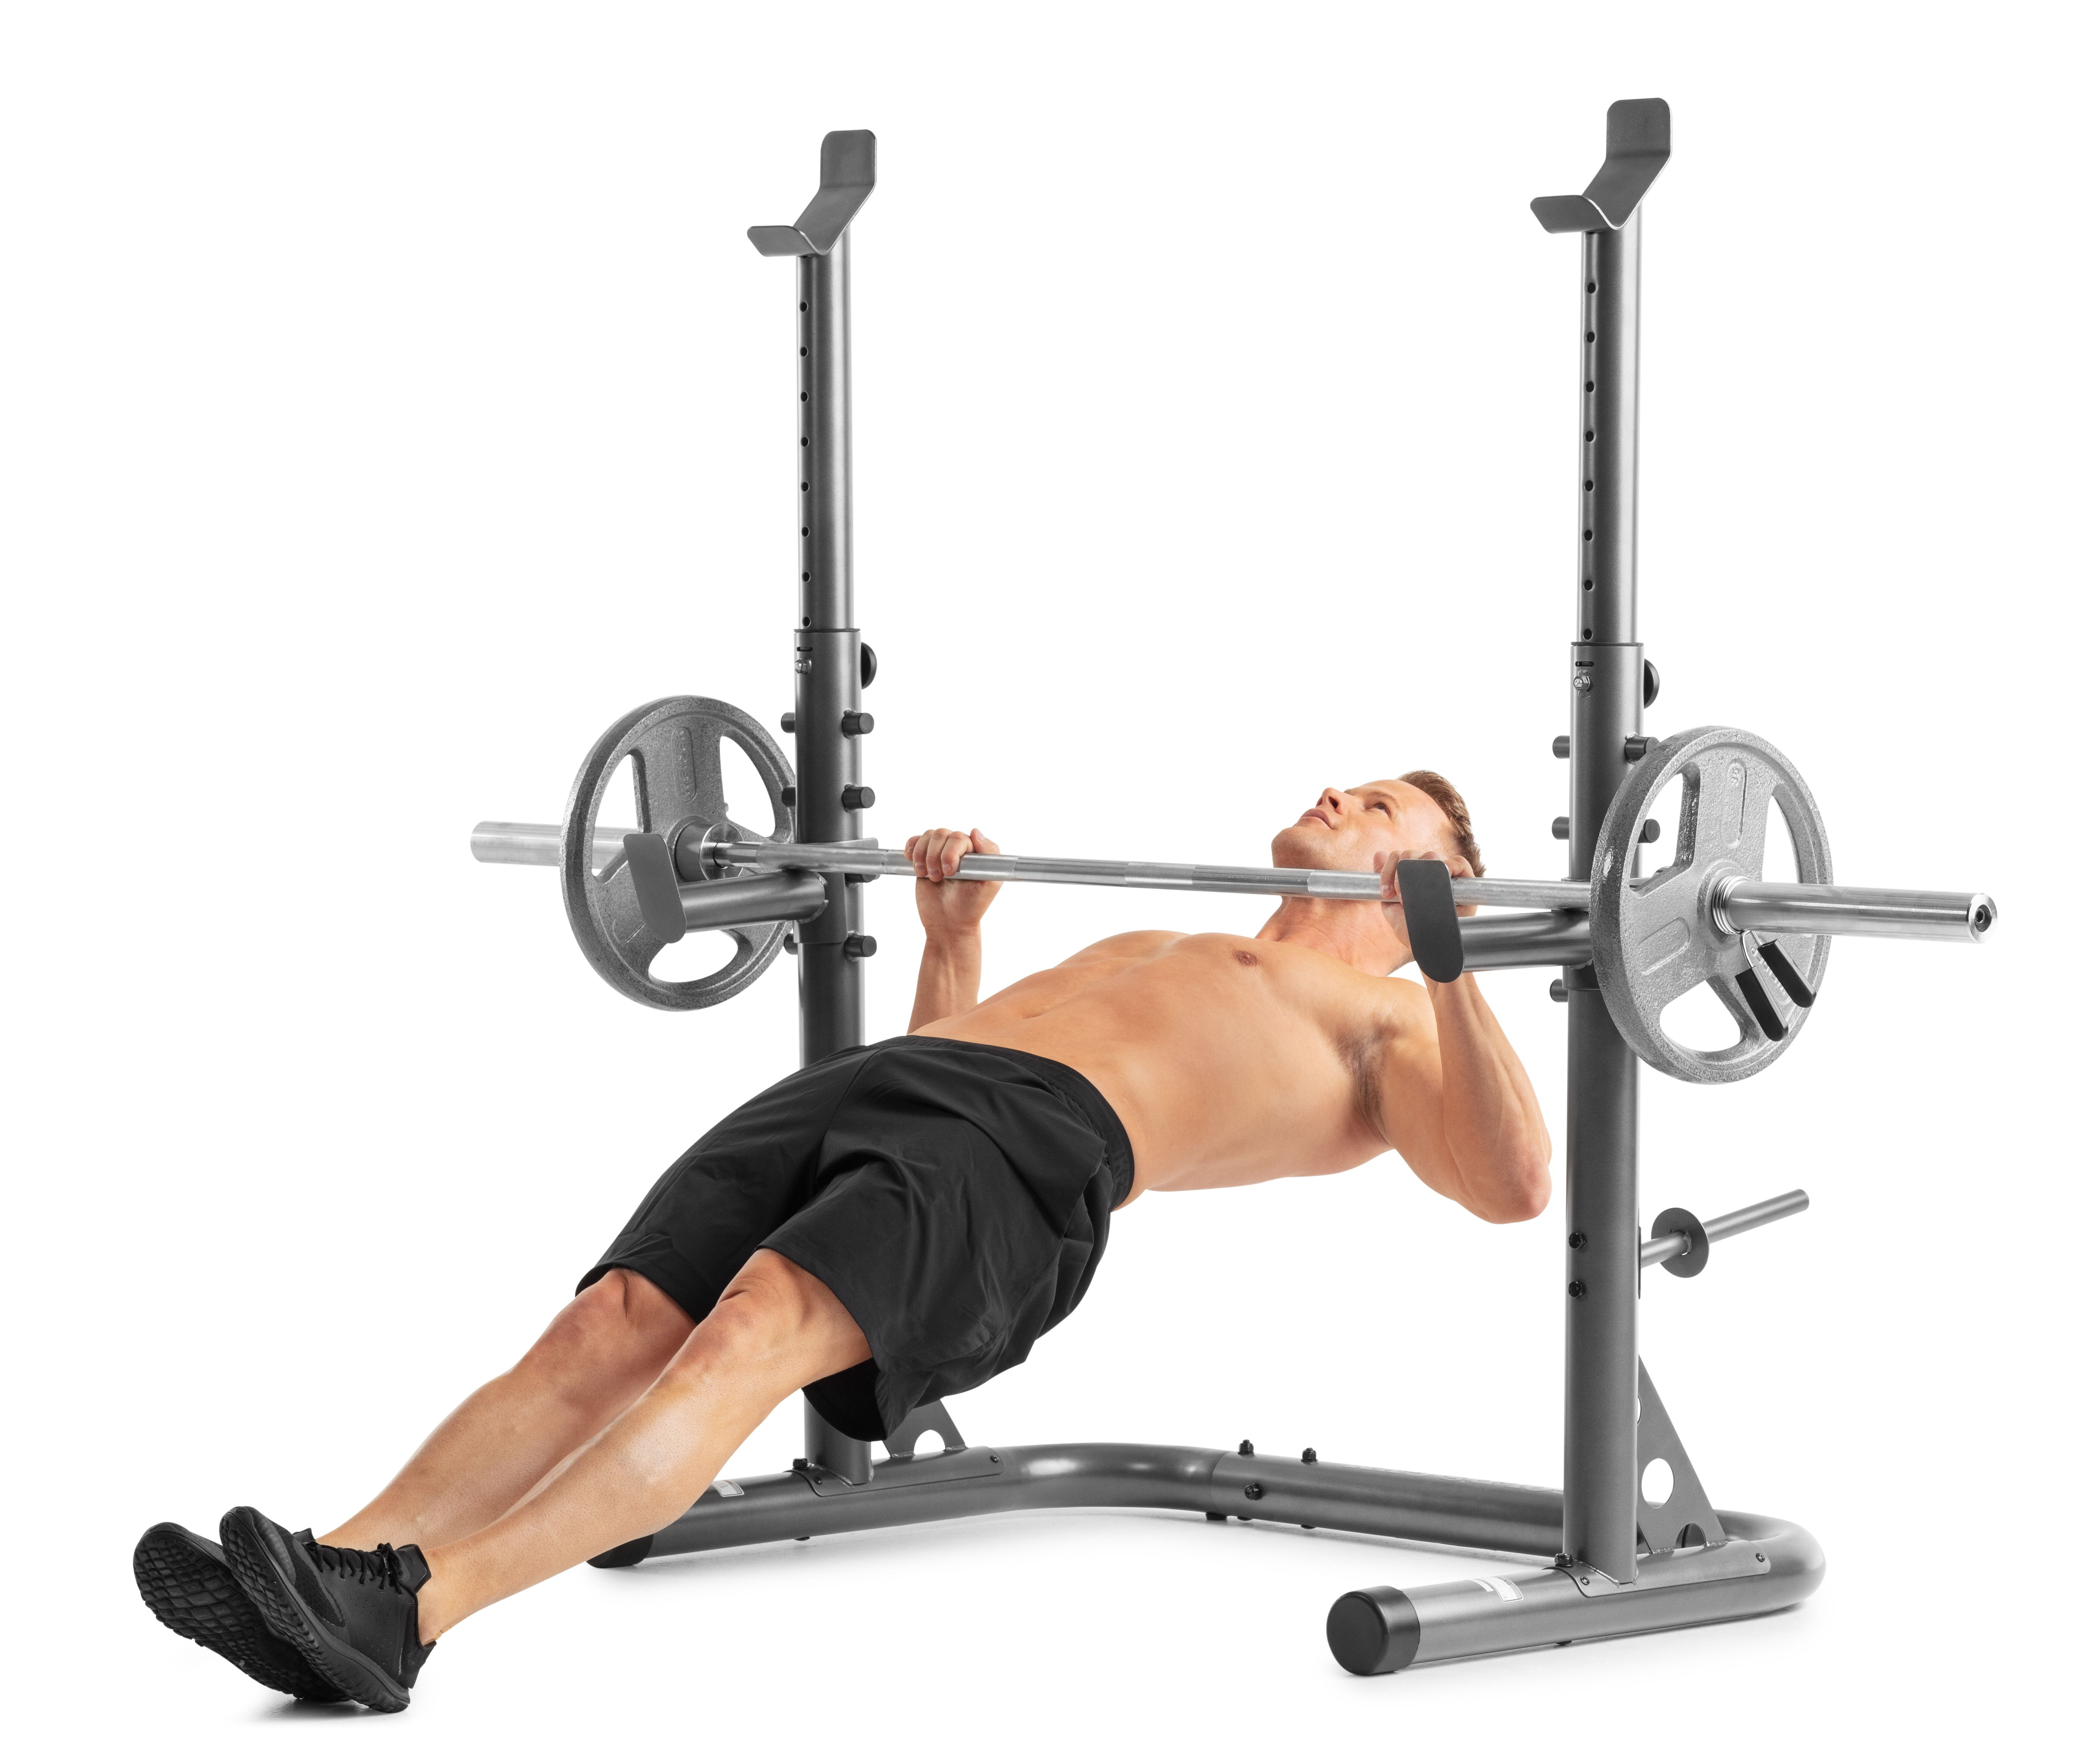 Sports & Outdoors in 2020 (With images) Squat rack